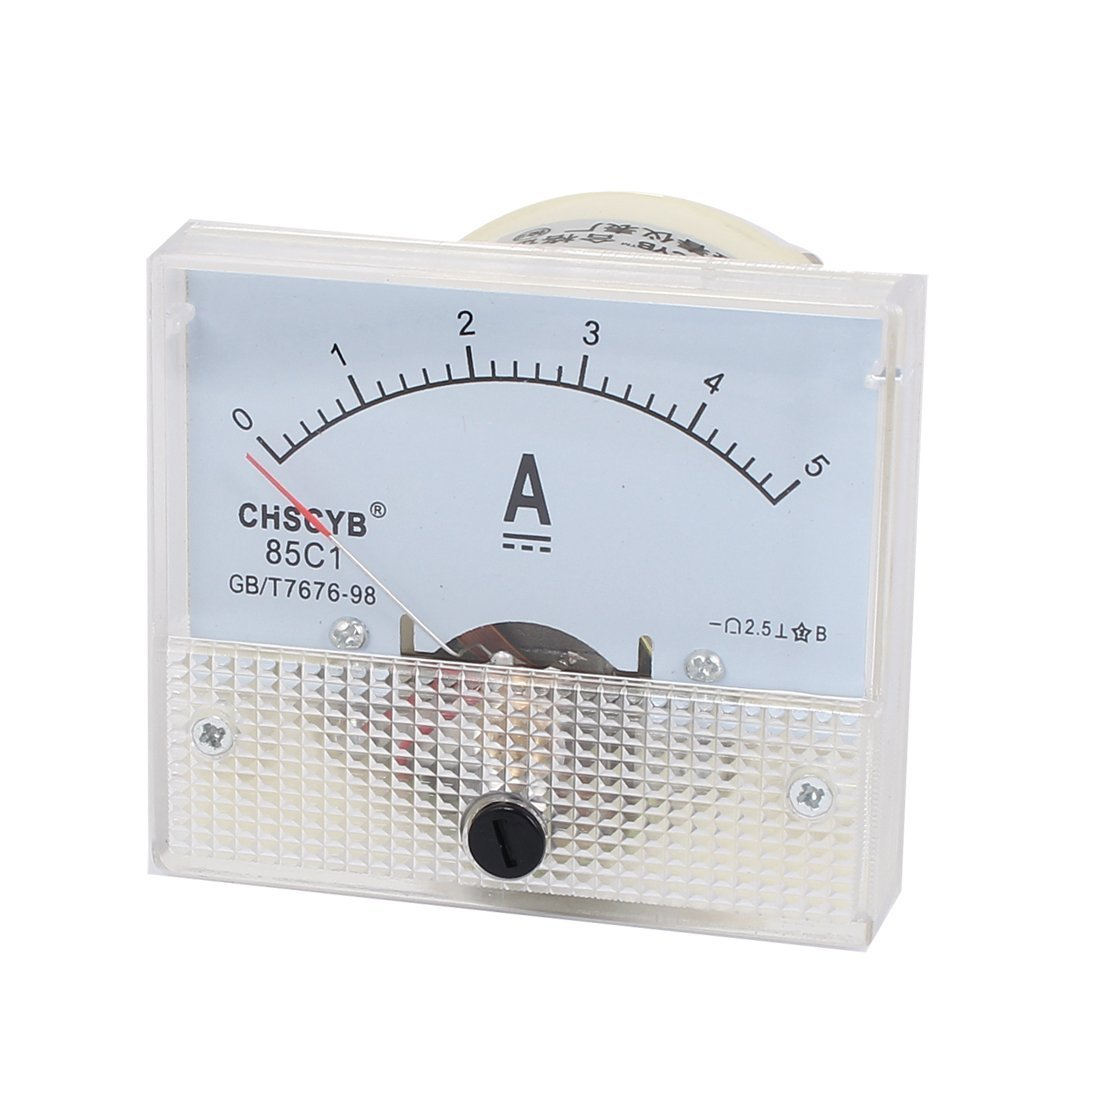 Phone service for home small business amp - 85c1 A Analog Current Panel Meter Dc 5a Amp Ammeter